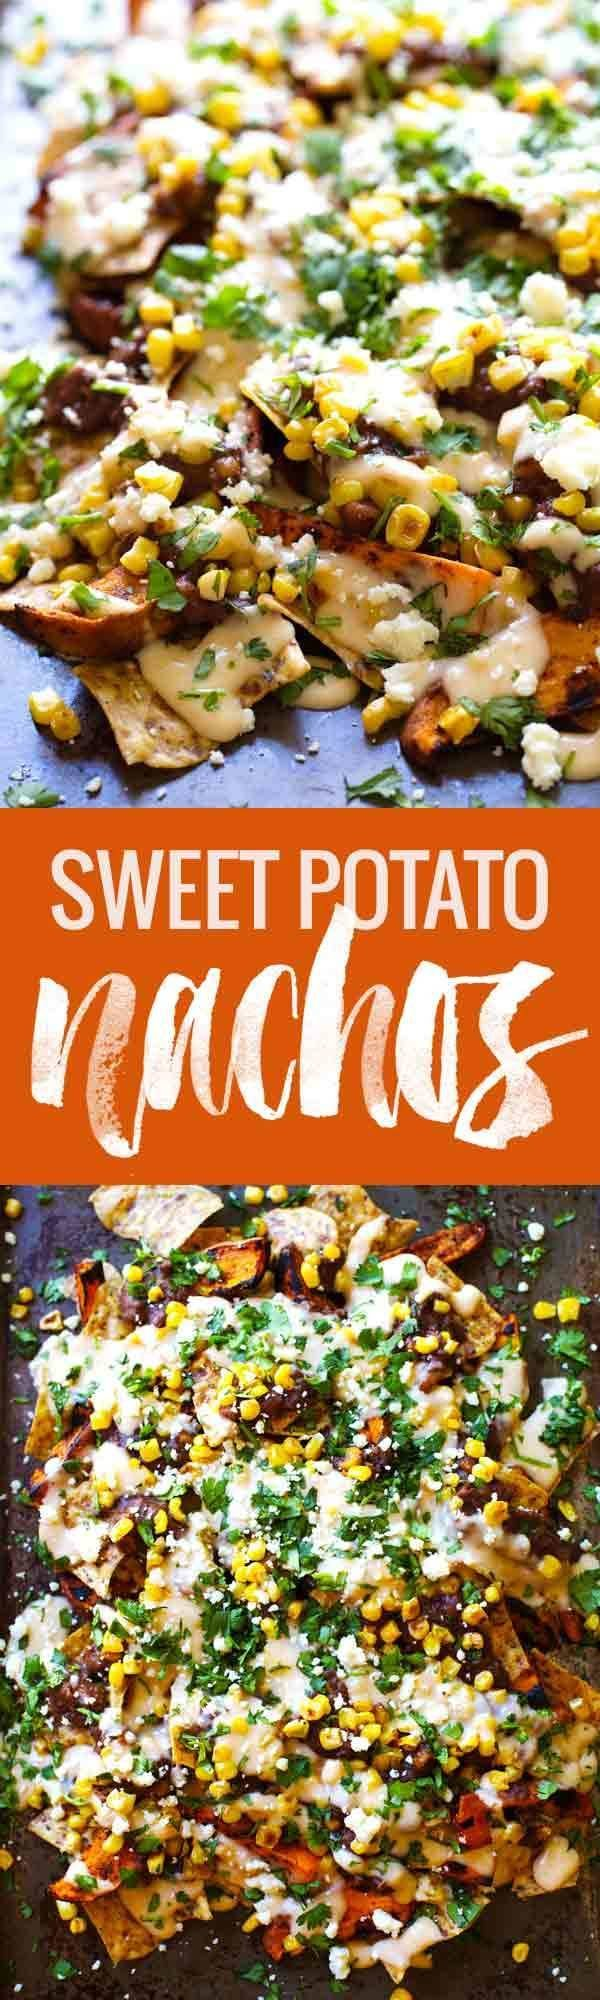 These Healthy Grilled Sweet Potato Nachos are veggie-loaded and smothered with a lighter homemade cheese sauce.